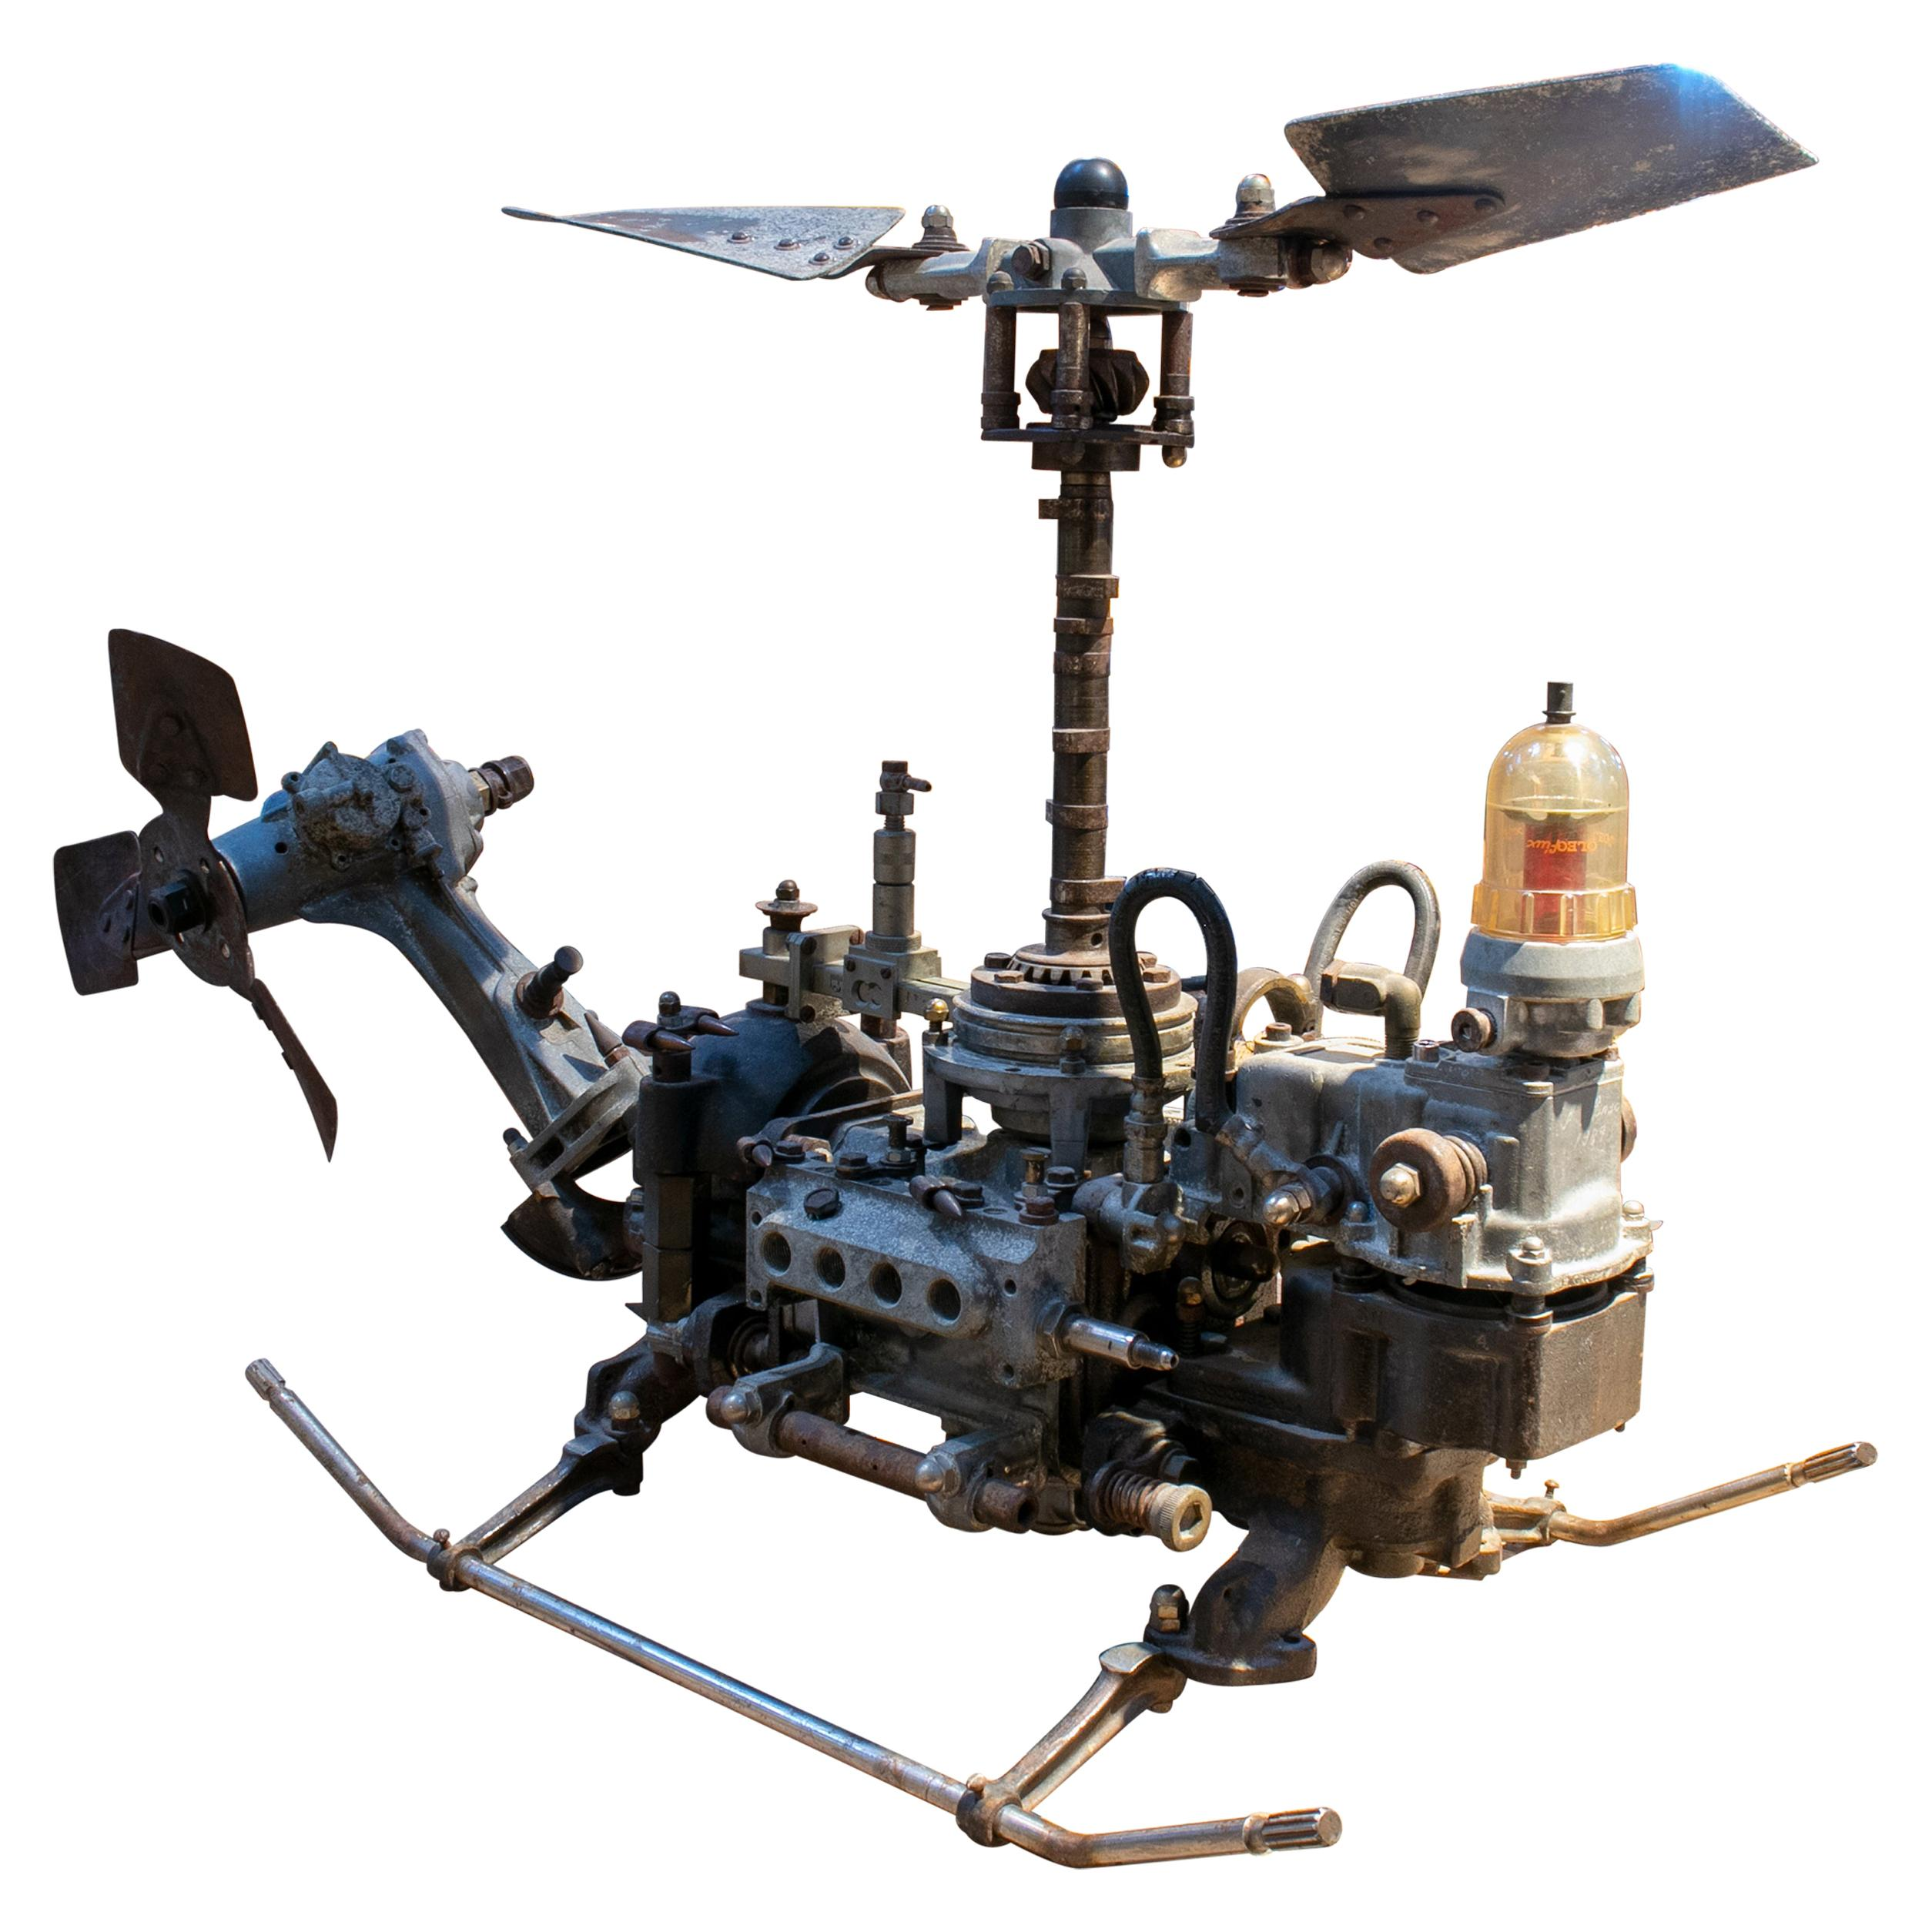 1970s Helicopter Sculpture Made with Assorted Old Mechanical Metal Pieces